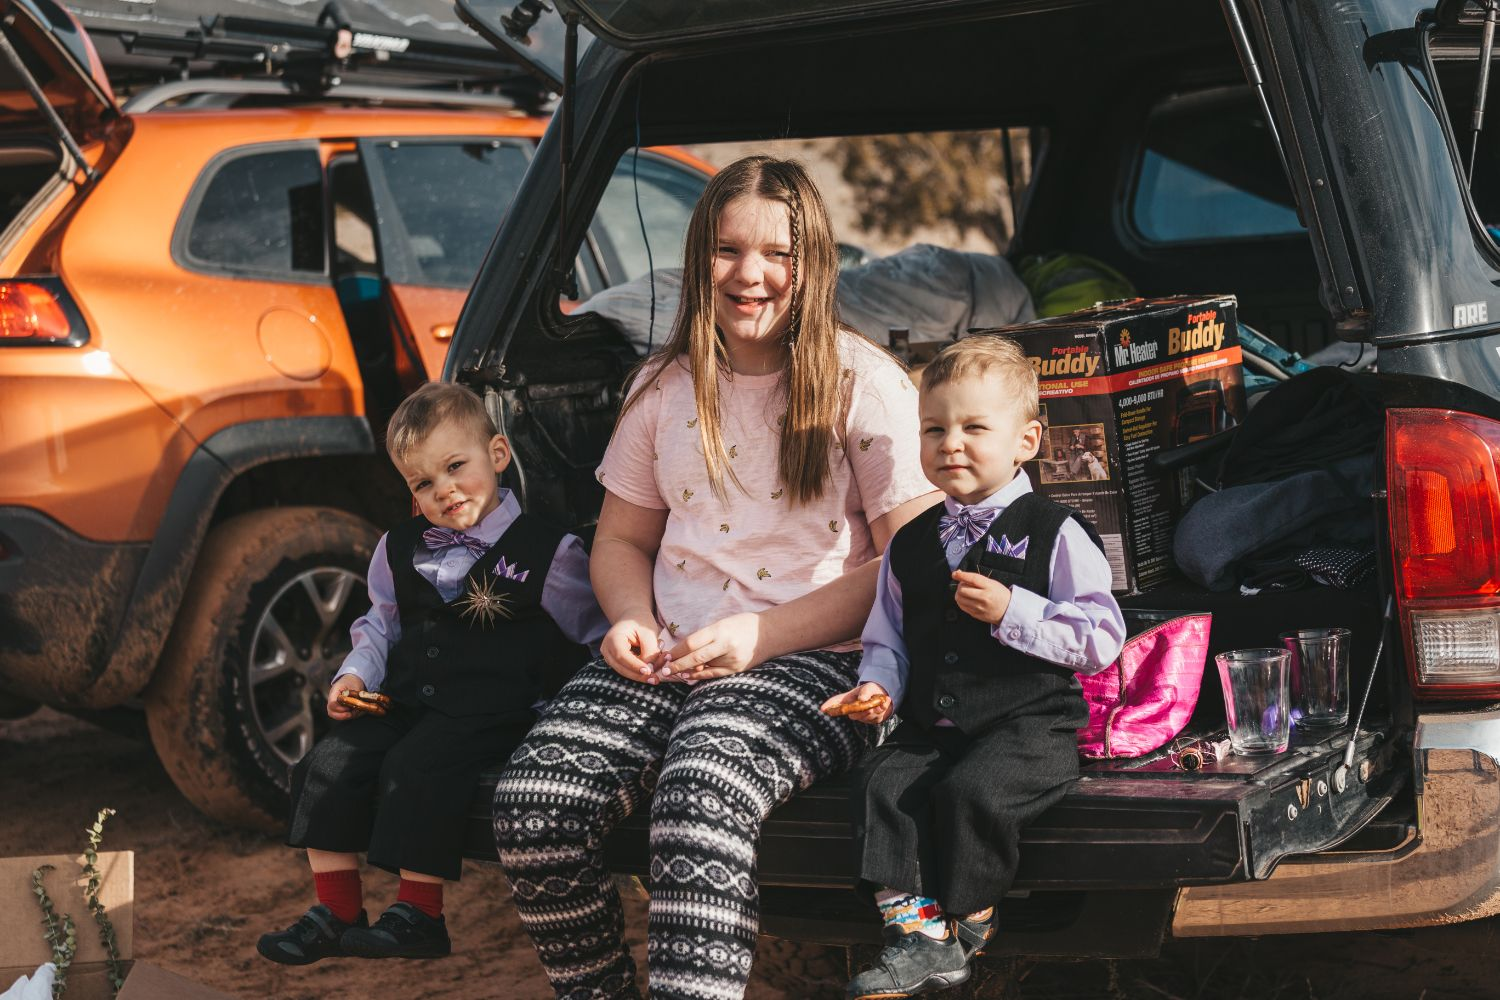 kids-sit-back-of-truck-utah-desert-elopement